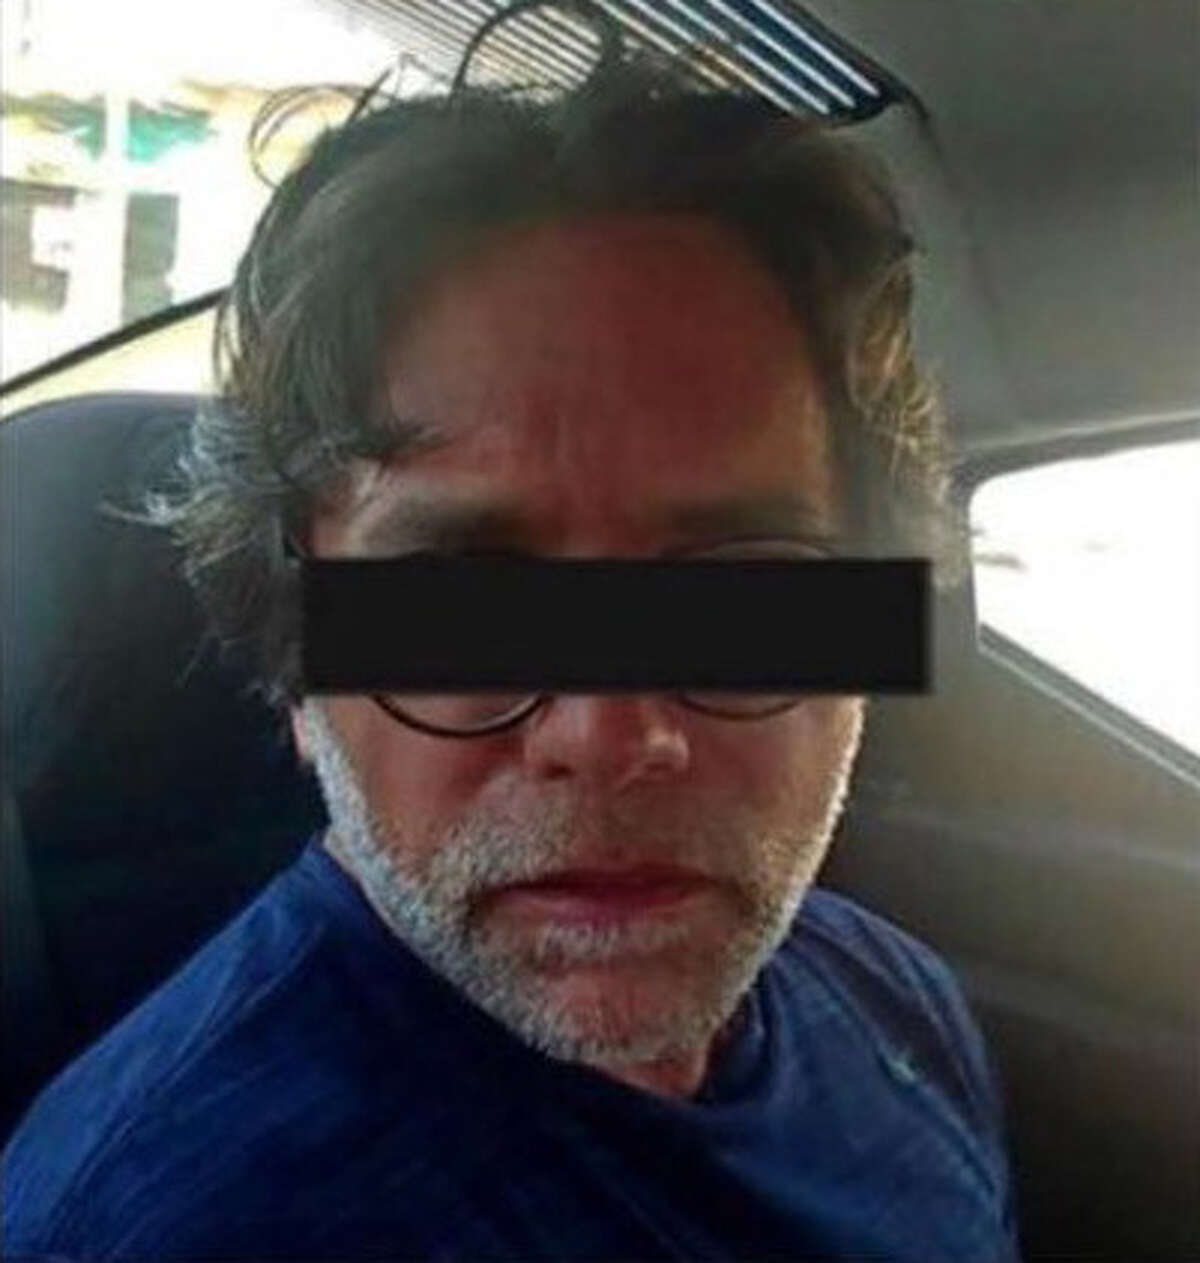 Keith Raniere in a police car after being arrested Sunday, March 15, 2018, in Mexico.(Photo courtesy Frank Parlato/ArtVoice)